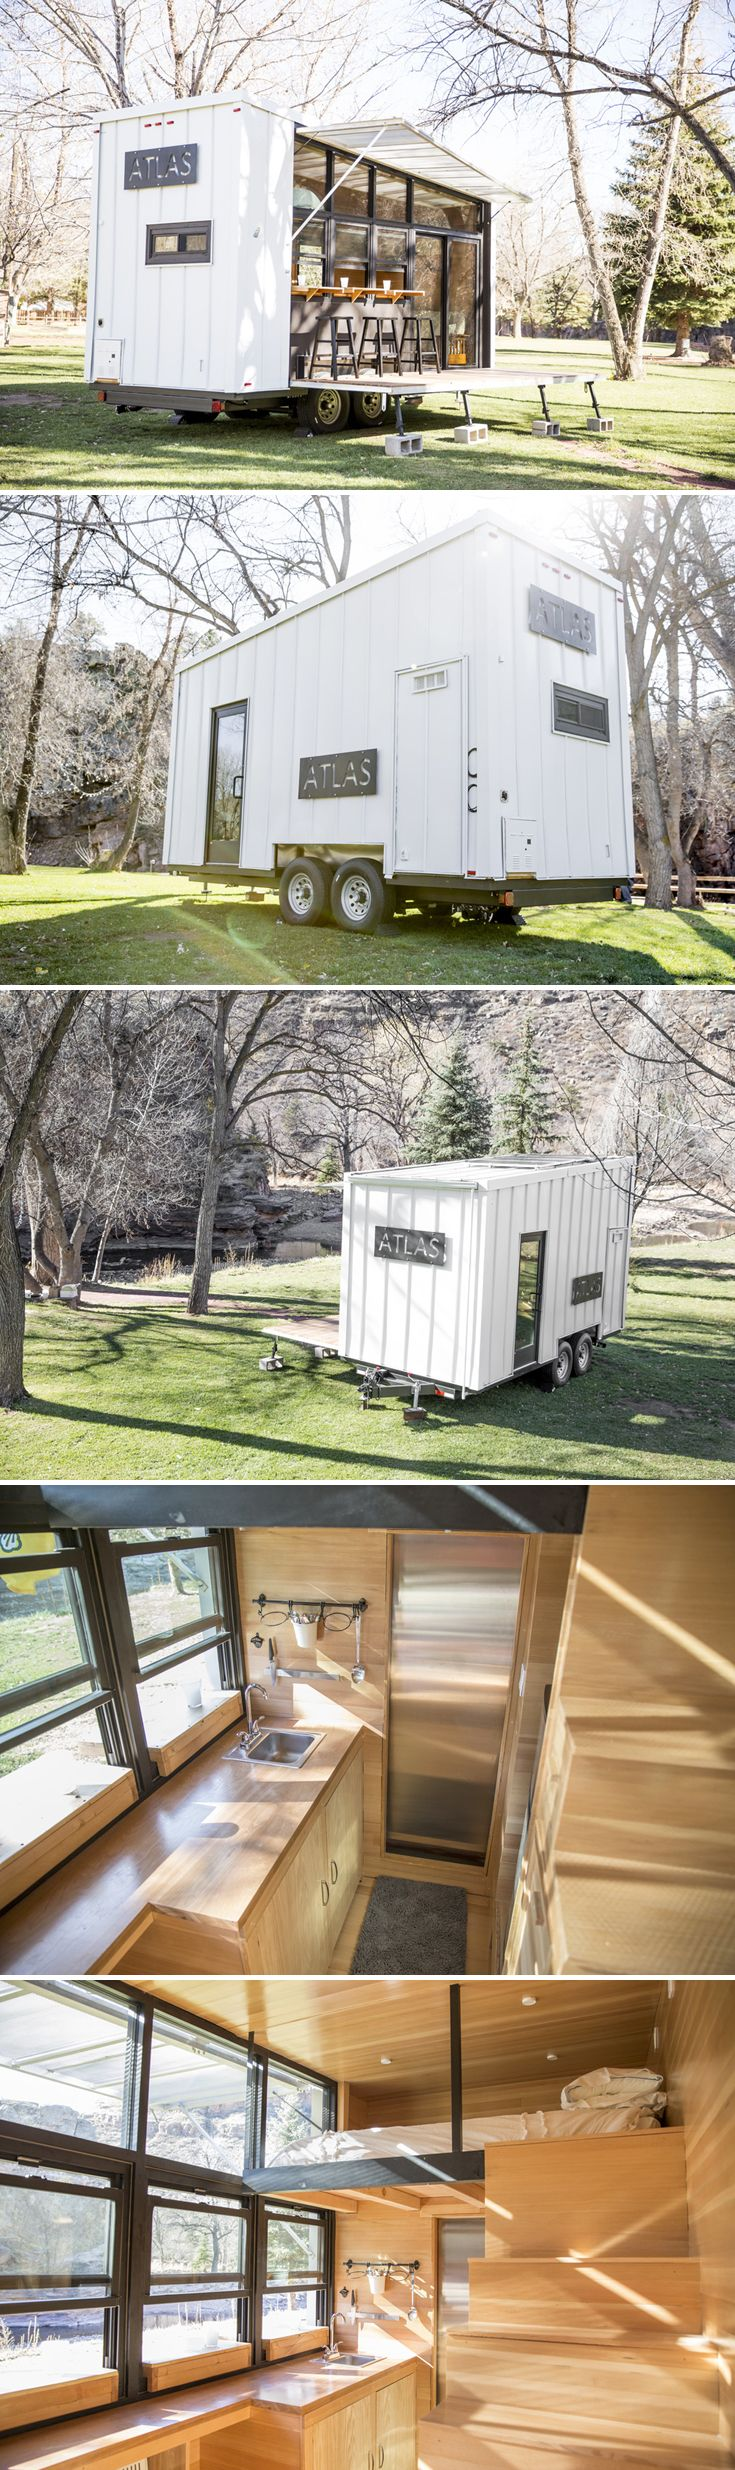 With its full window wall and huge fold down deck, the Atlas Tiny House helps people connect with nature. Available for rent at WeeCasa in Lyons, CO.